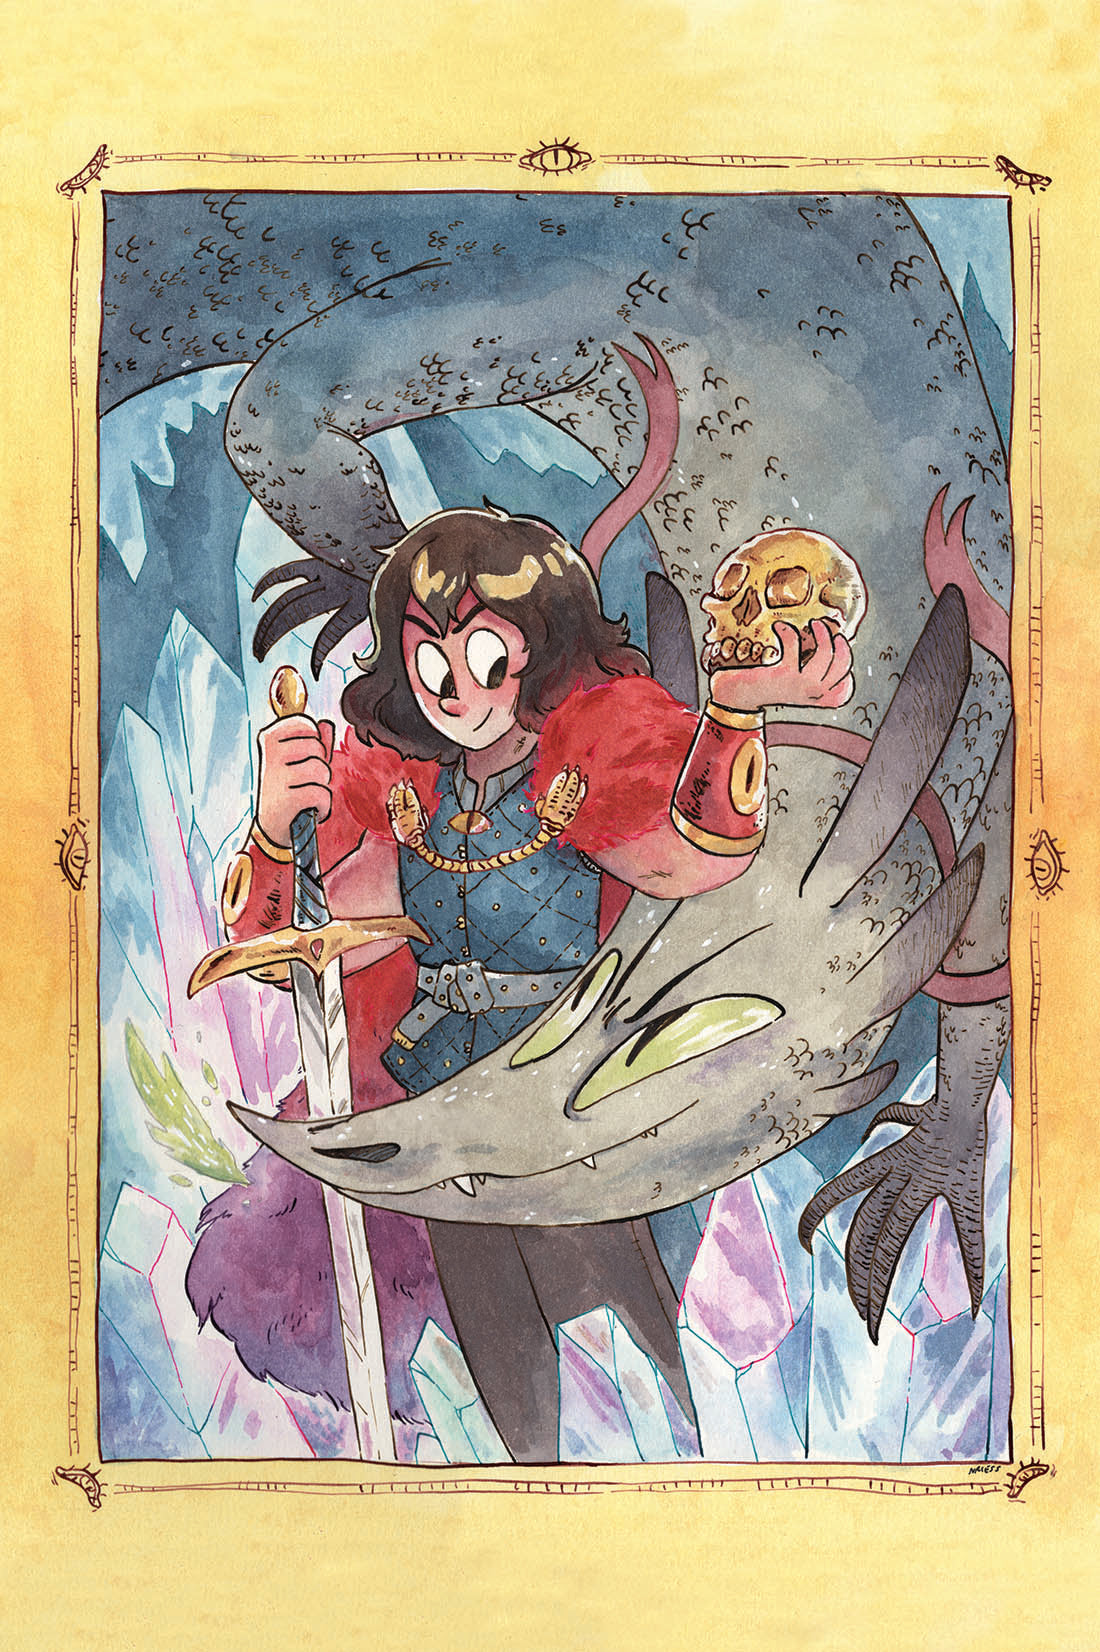 Snarlbear Postcards and Stickers Set from Snarlbear - Webcomic Merchandise